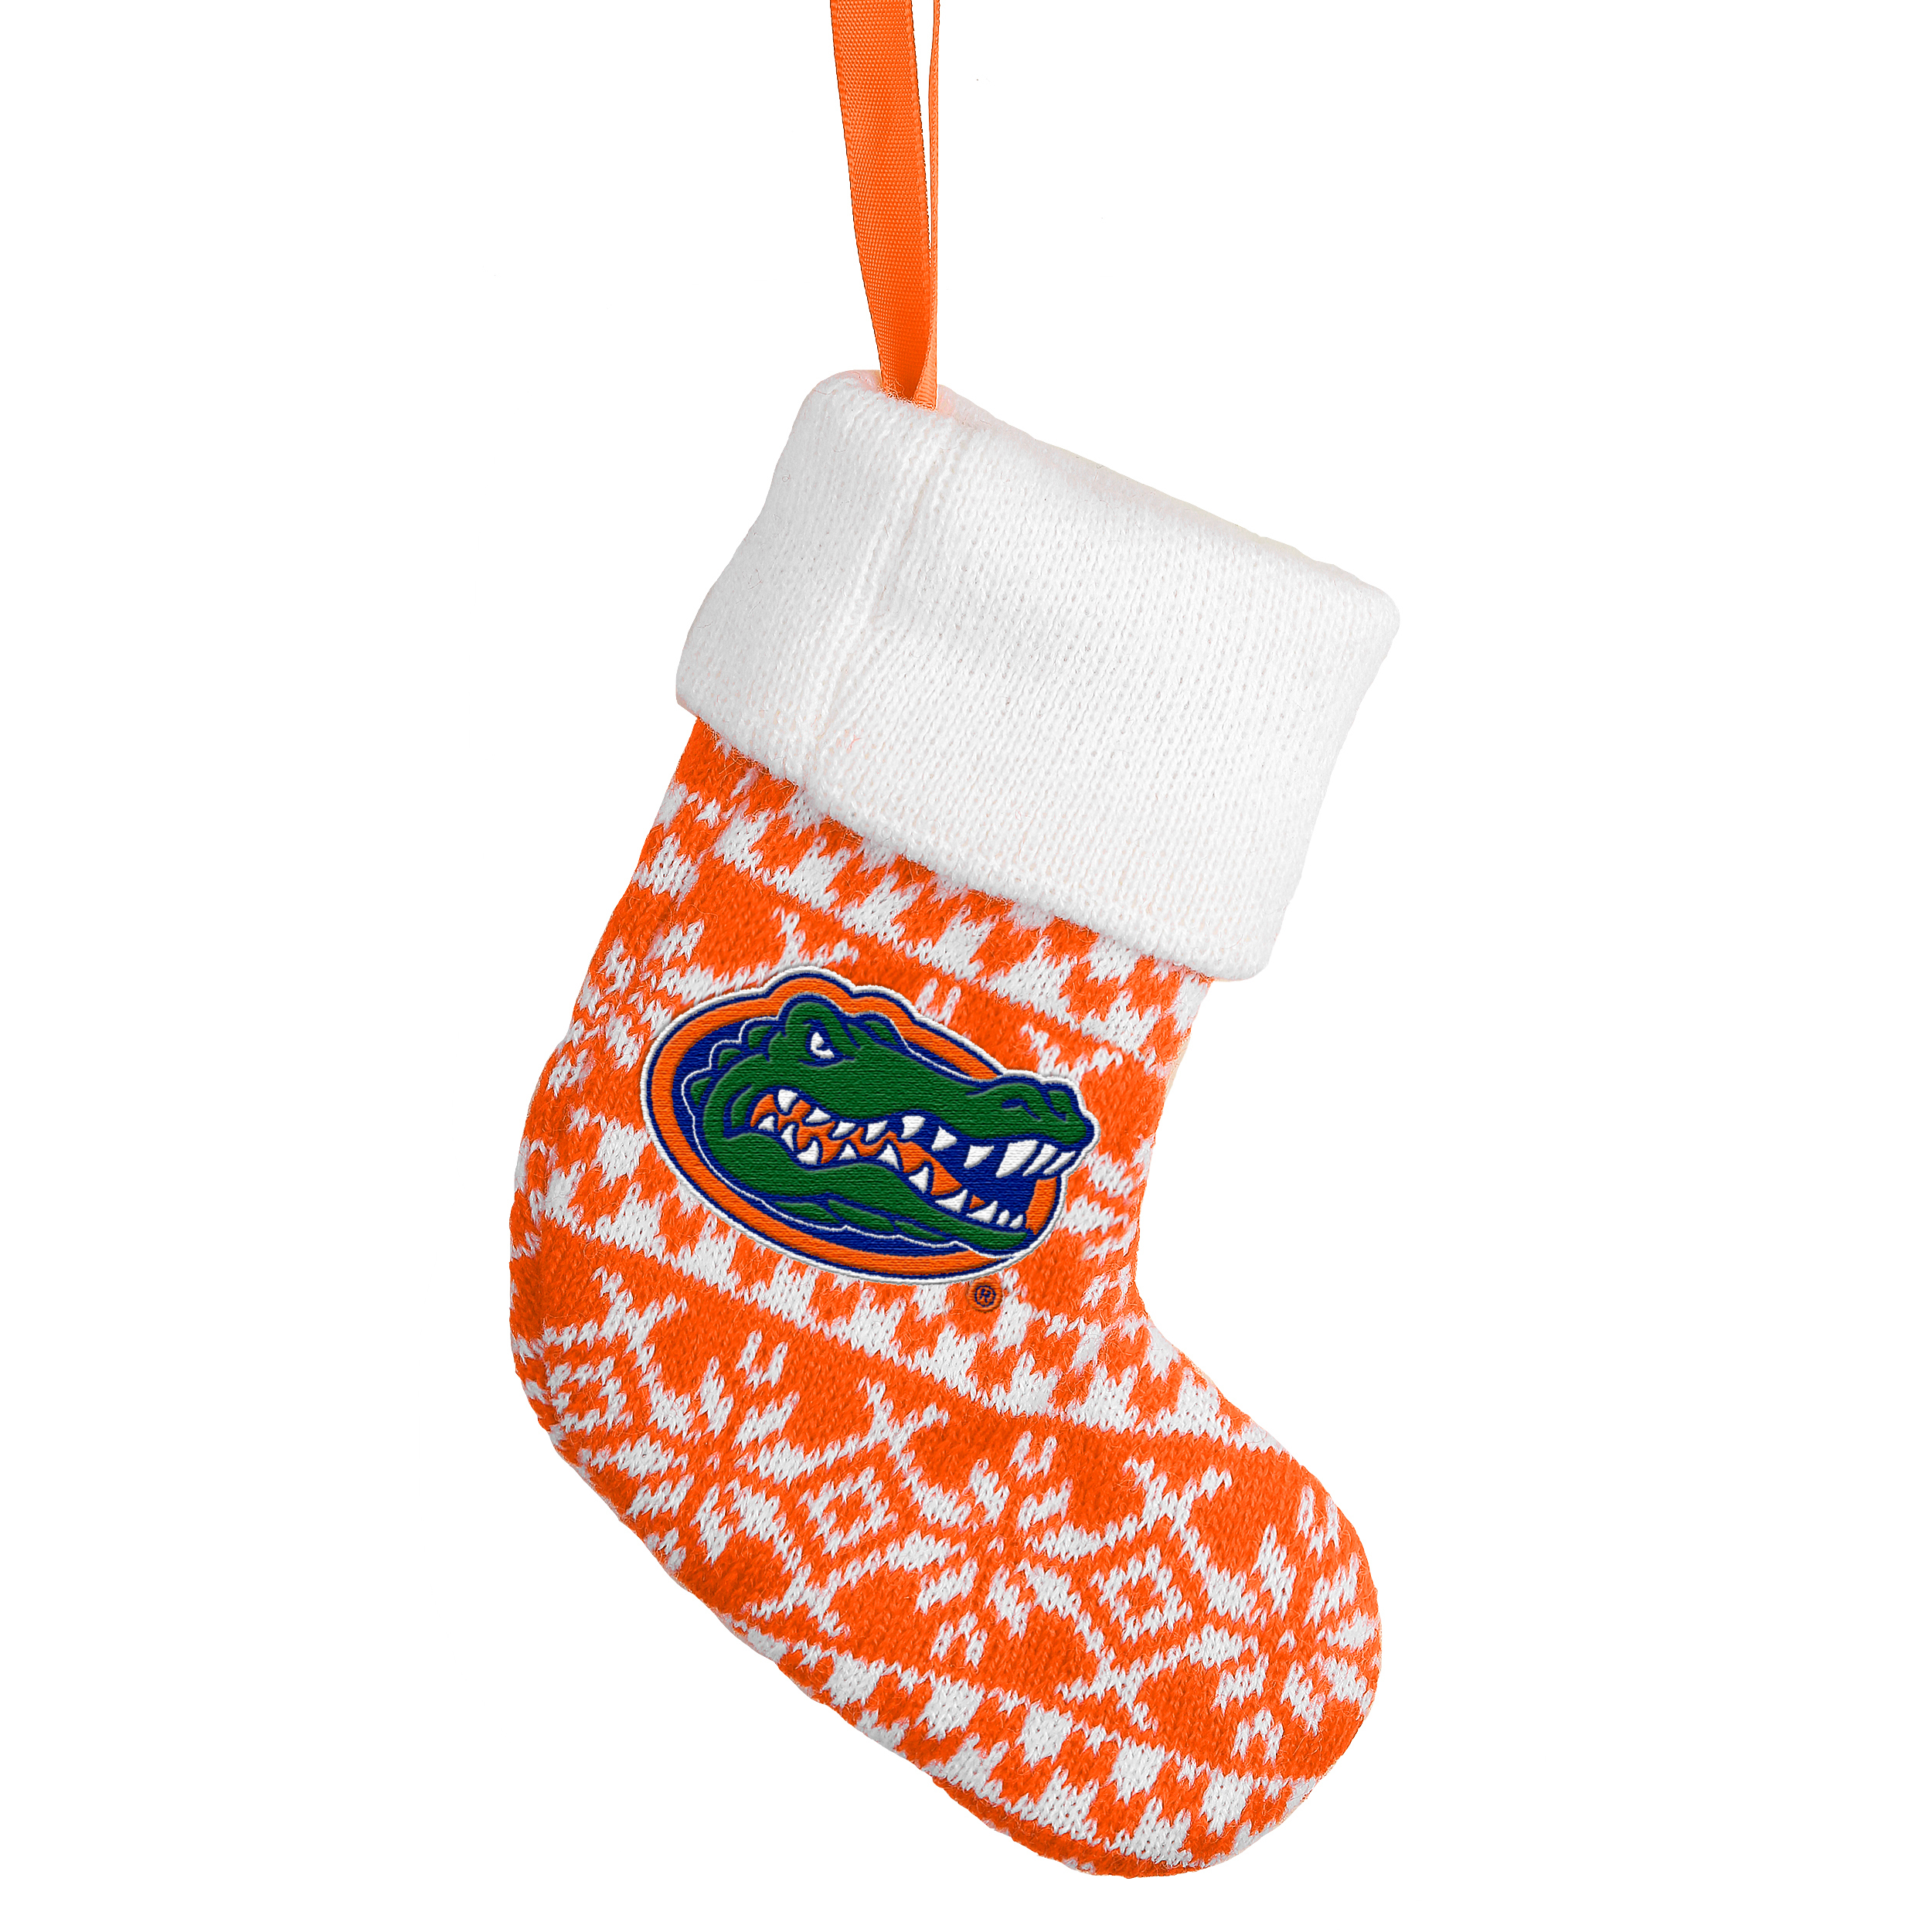 Florida Gators Official NCAA Holiday Knit Stocking Christmas Ornament Gift Card Holder by Forever Collectibles 491939